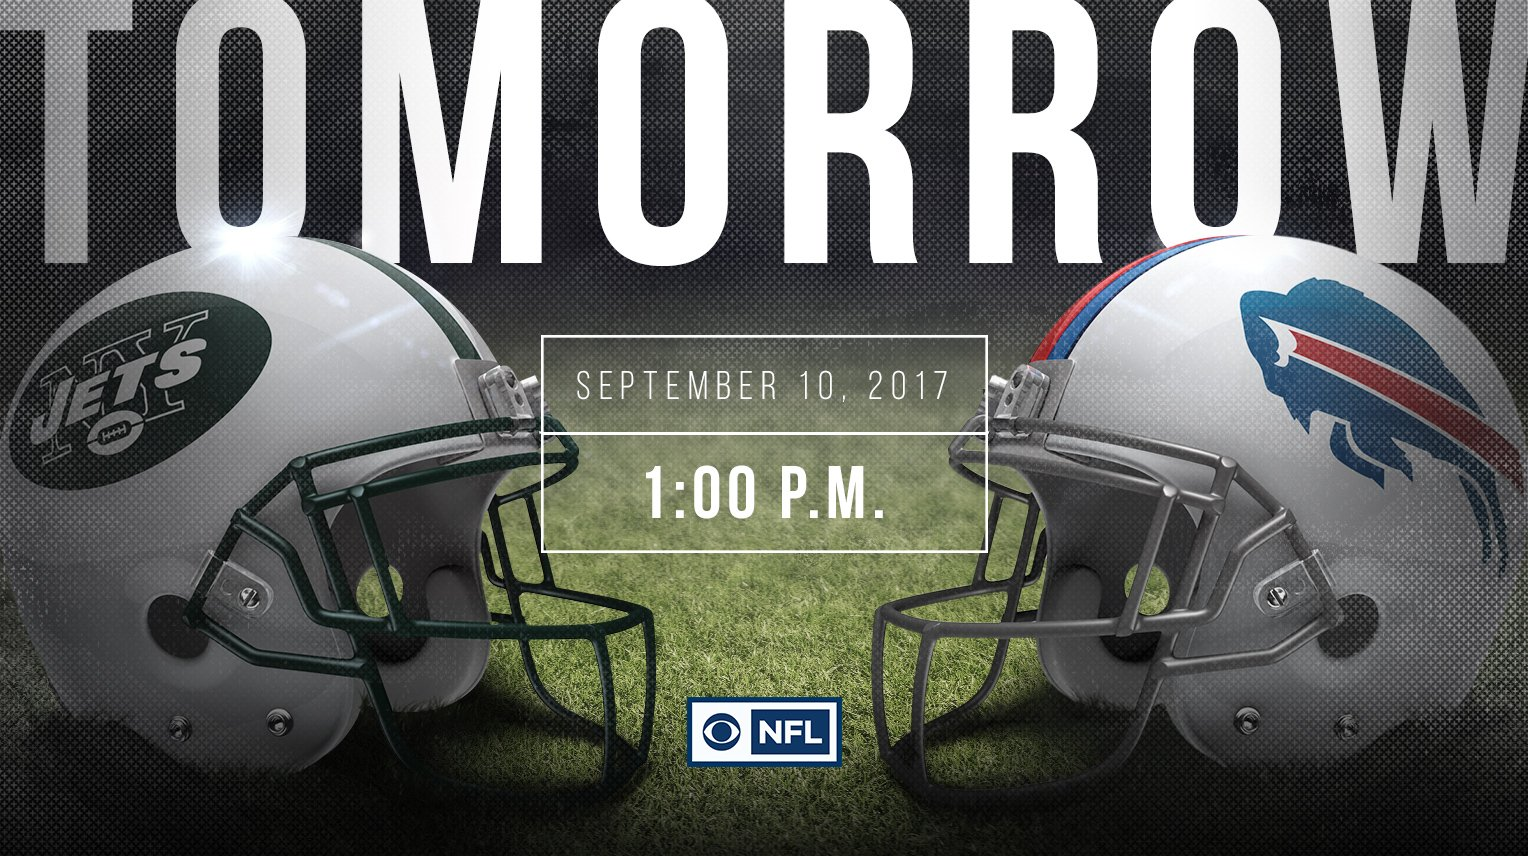 The season begins TOMORROW.  #NYJvsBUF: https://t.co/gyXJKl3gQs https://t.co/a35TBo1fiu